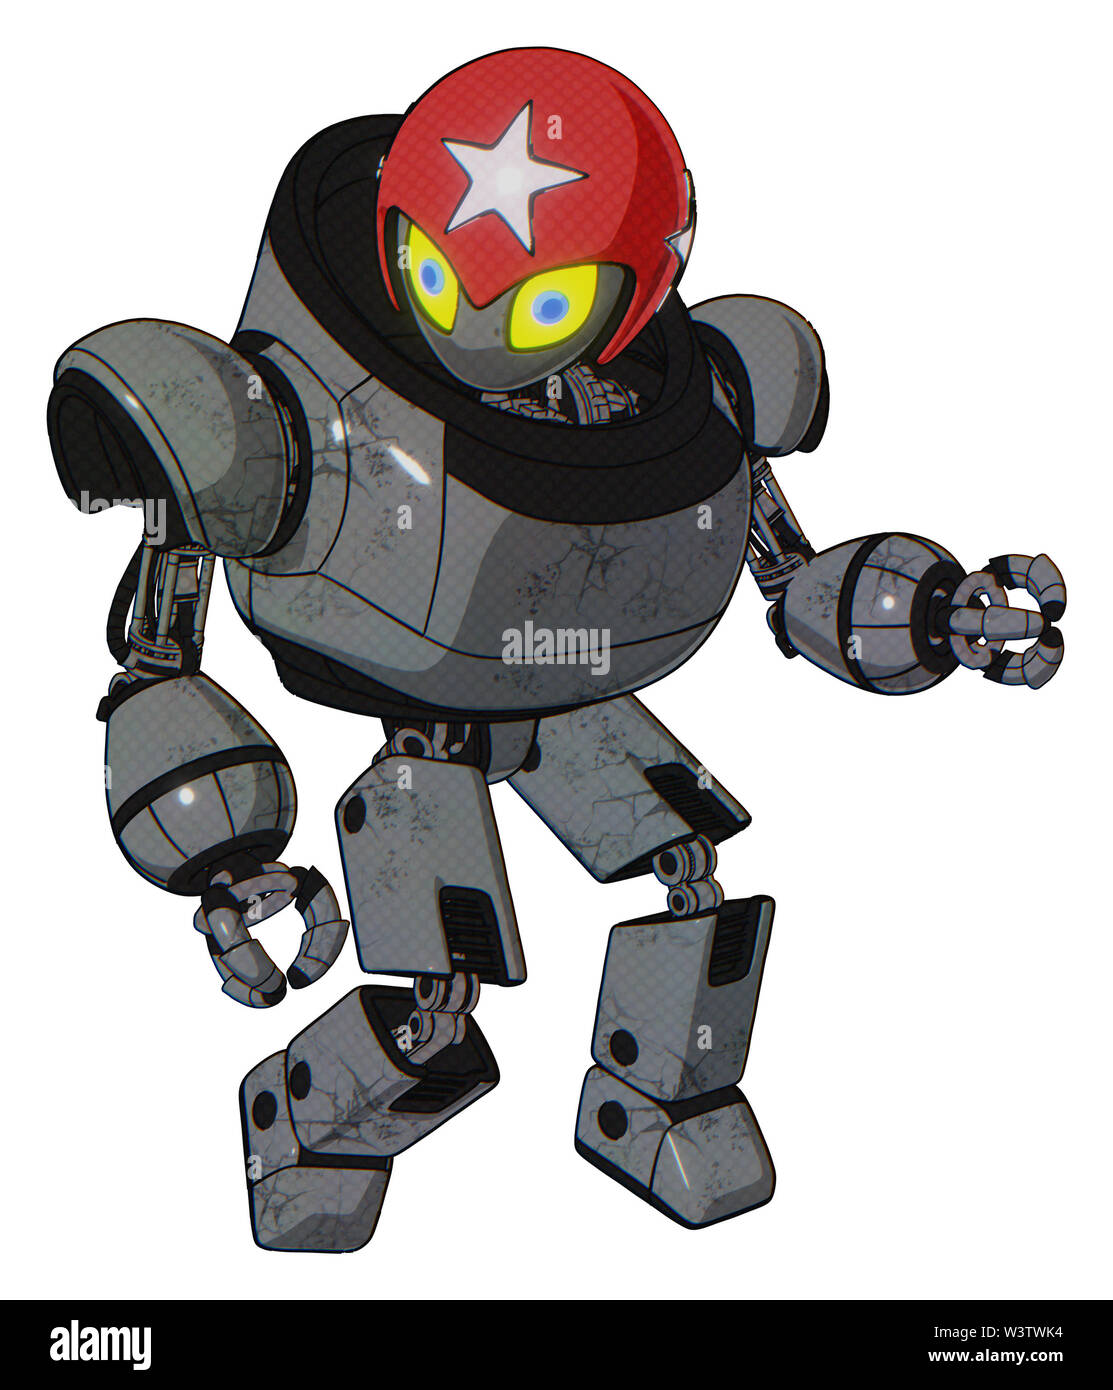 Bot containing elements: grey alien style head, yellow eyes with blue pupils, stars, red helmet, heavy upper chest, prototype exoplate legs. Stock Photo